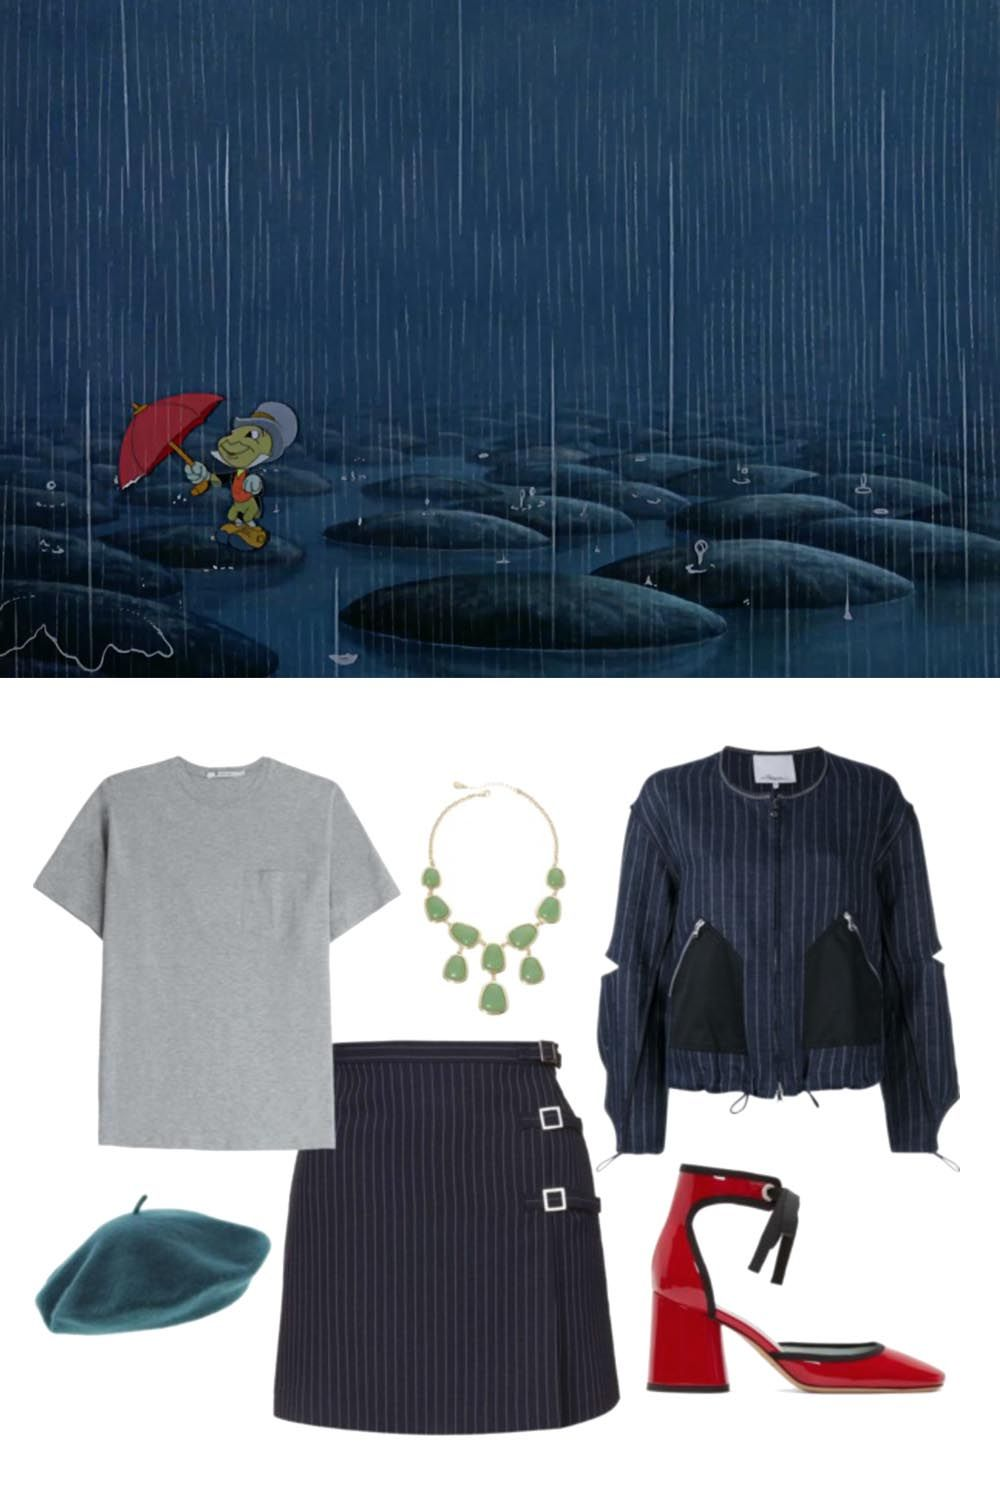 3efe7160fccb Outfit inspiration from classic Disney scenes.   Pinocchio + preppy chic  style     https